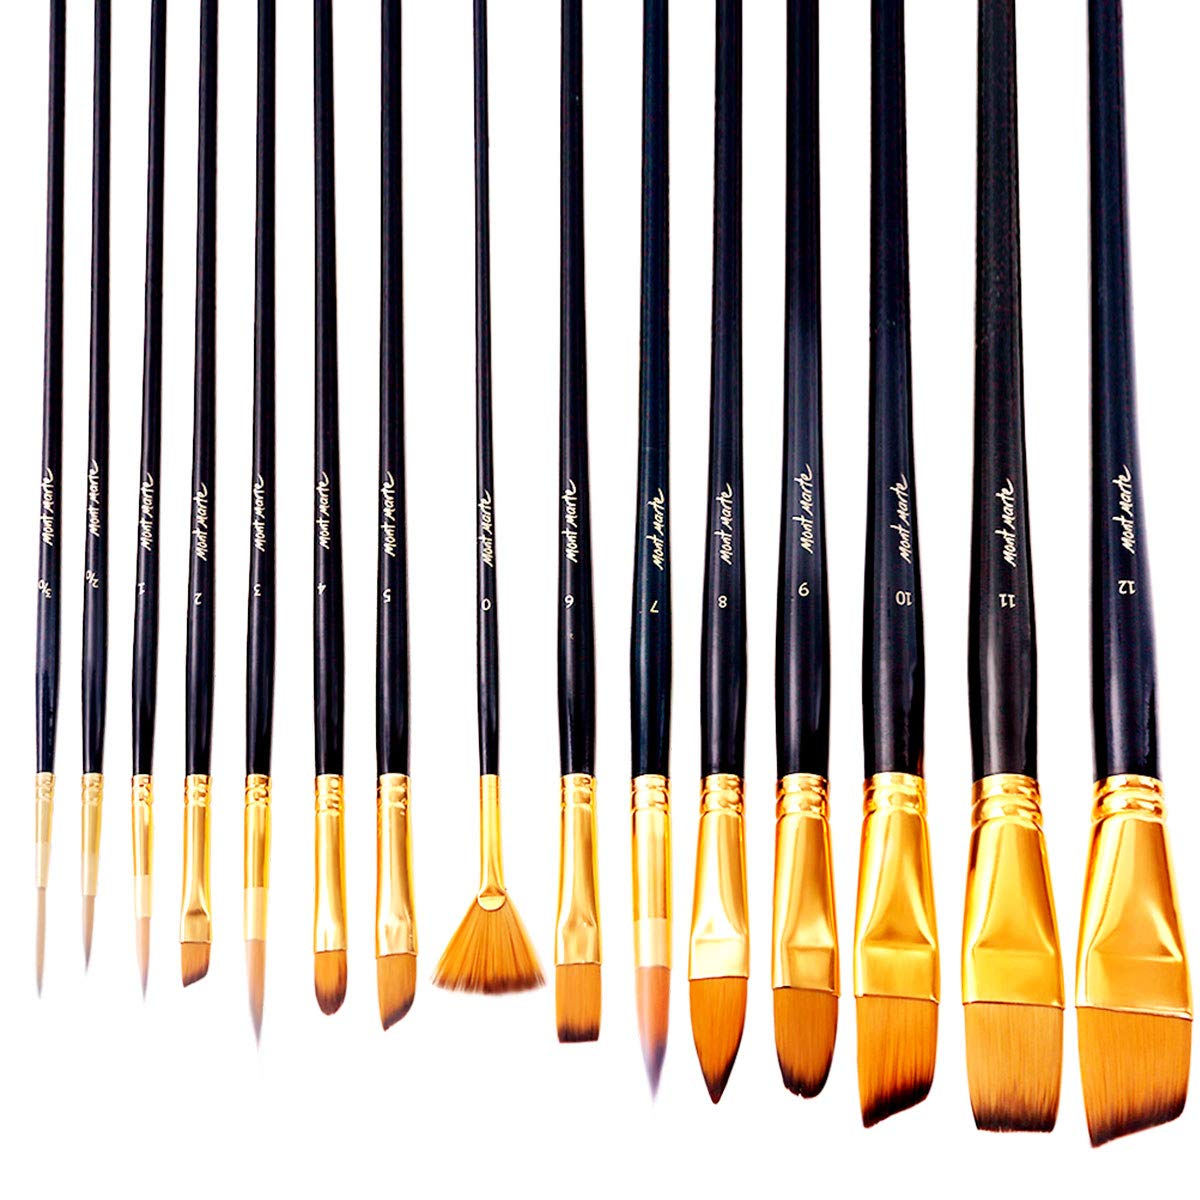 Art Paint Brushes Set by Mont Marte, Great for Watercolor, Acrylic, Oil-15 Different Sizes Nice Gift for Artists, Adults & Kids BMSS0100?